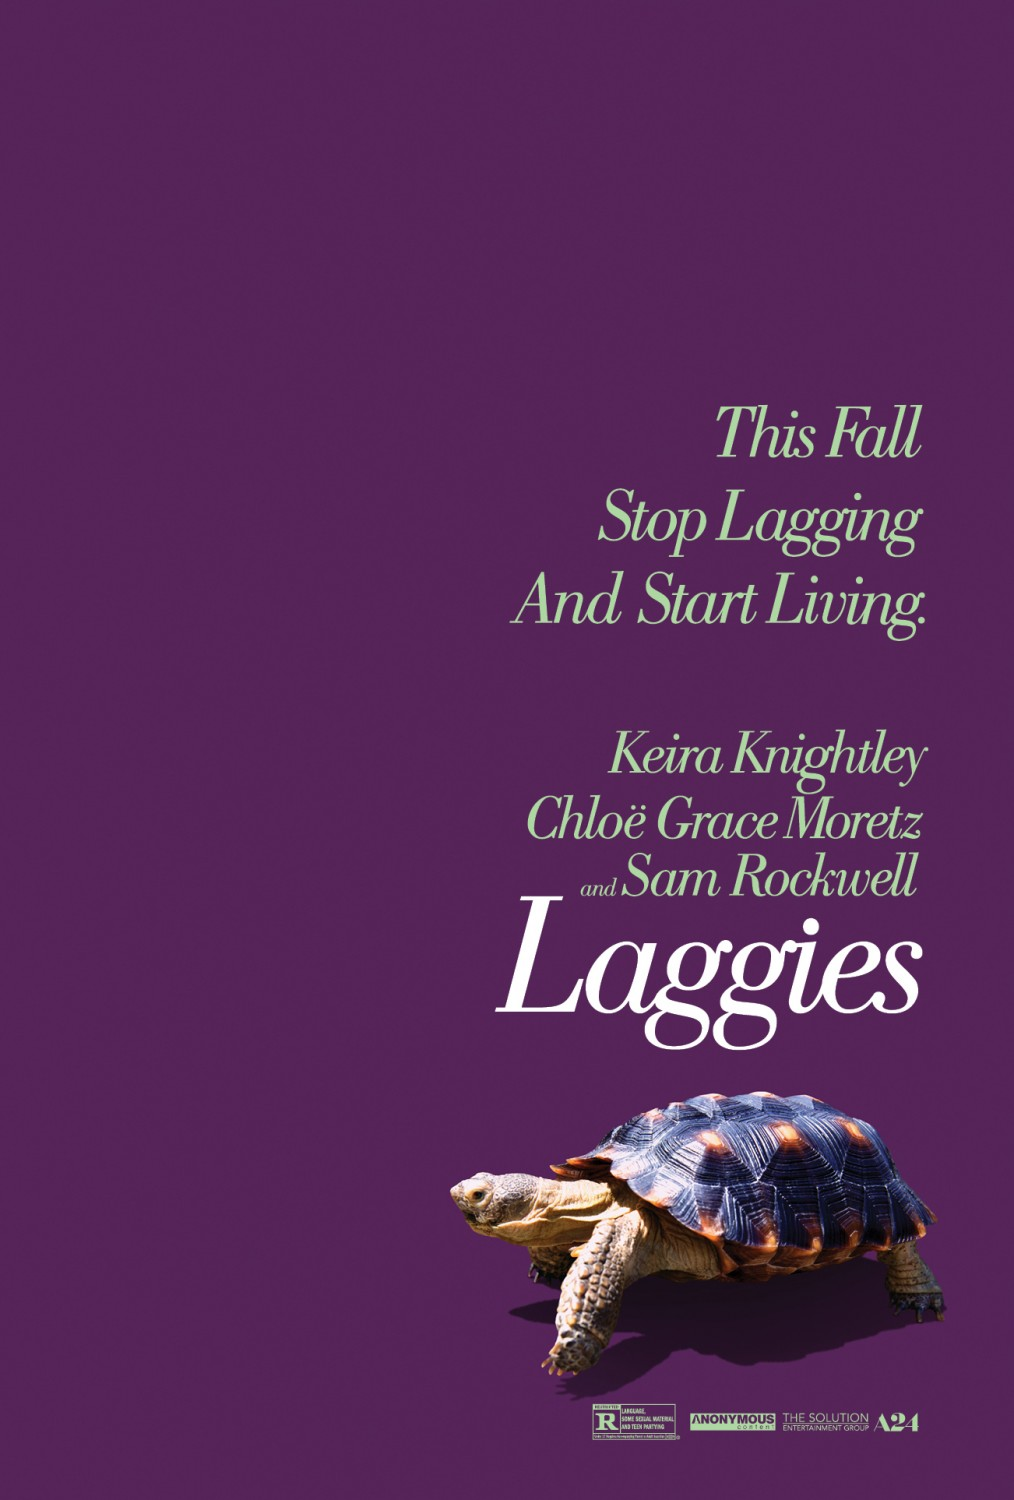 Laggies-Official Poster Banner PROMO XLG-17JULHO2014